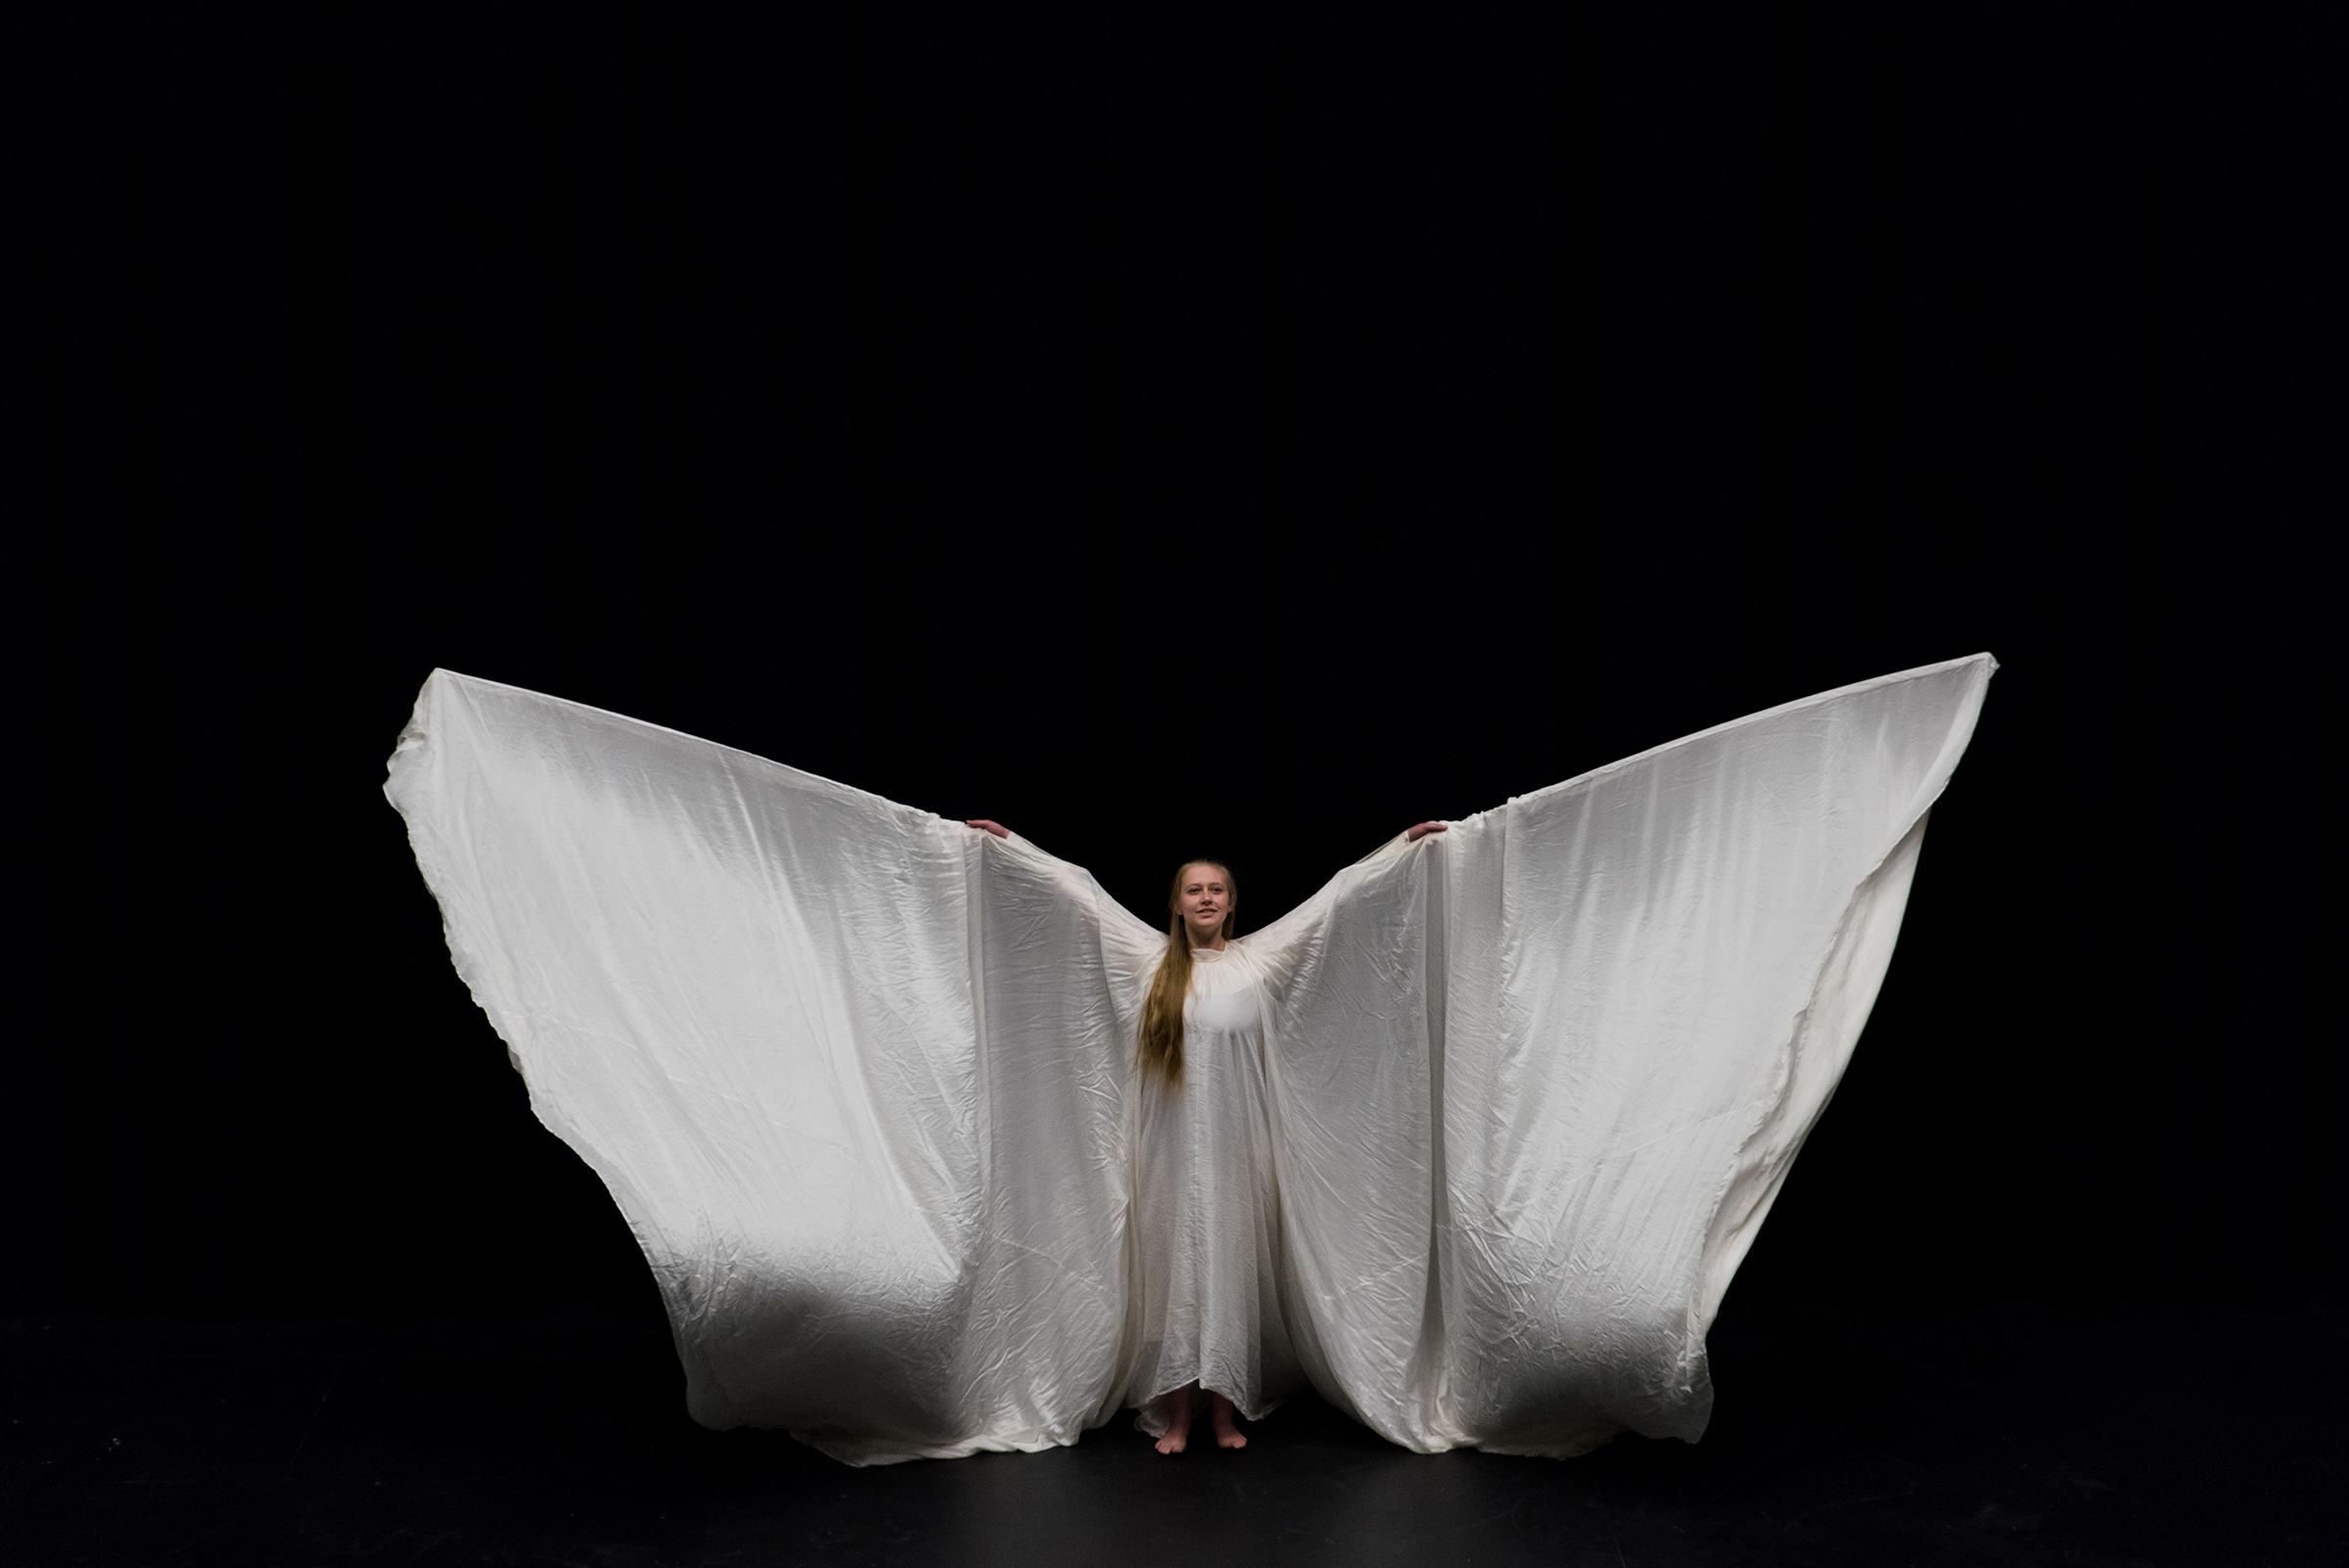 Dancer in white: Laura Miller re-created the work of famed American interdisciplinary dance artist Loïe Fuller in a preview of the Spring 2017 Dance Performance at Gonzaga (Photo by Edward Bell)